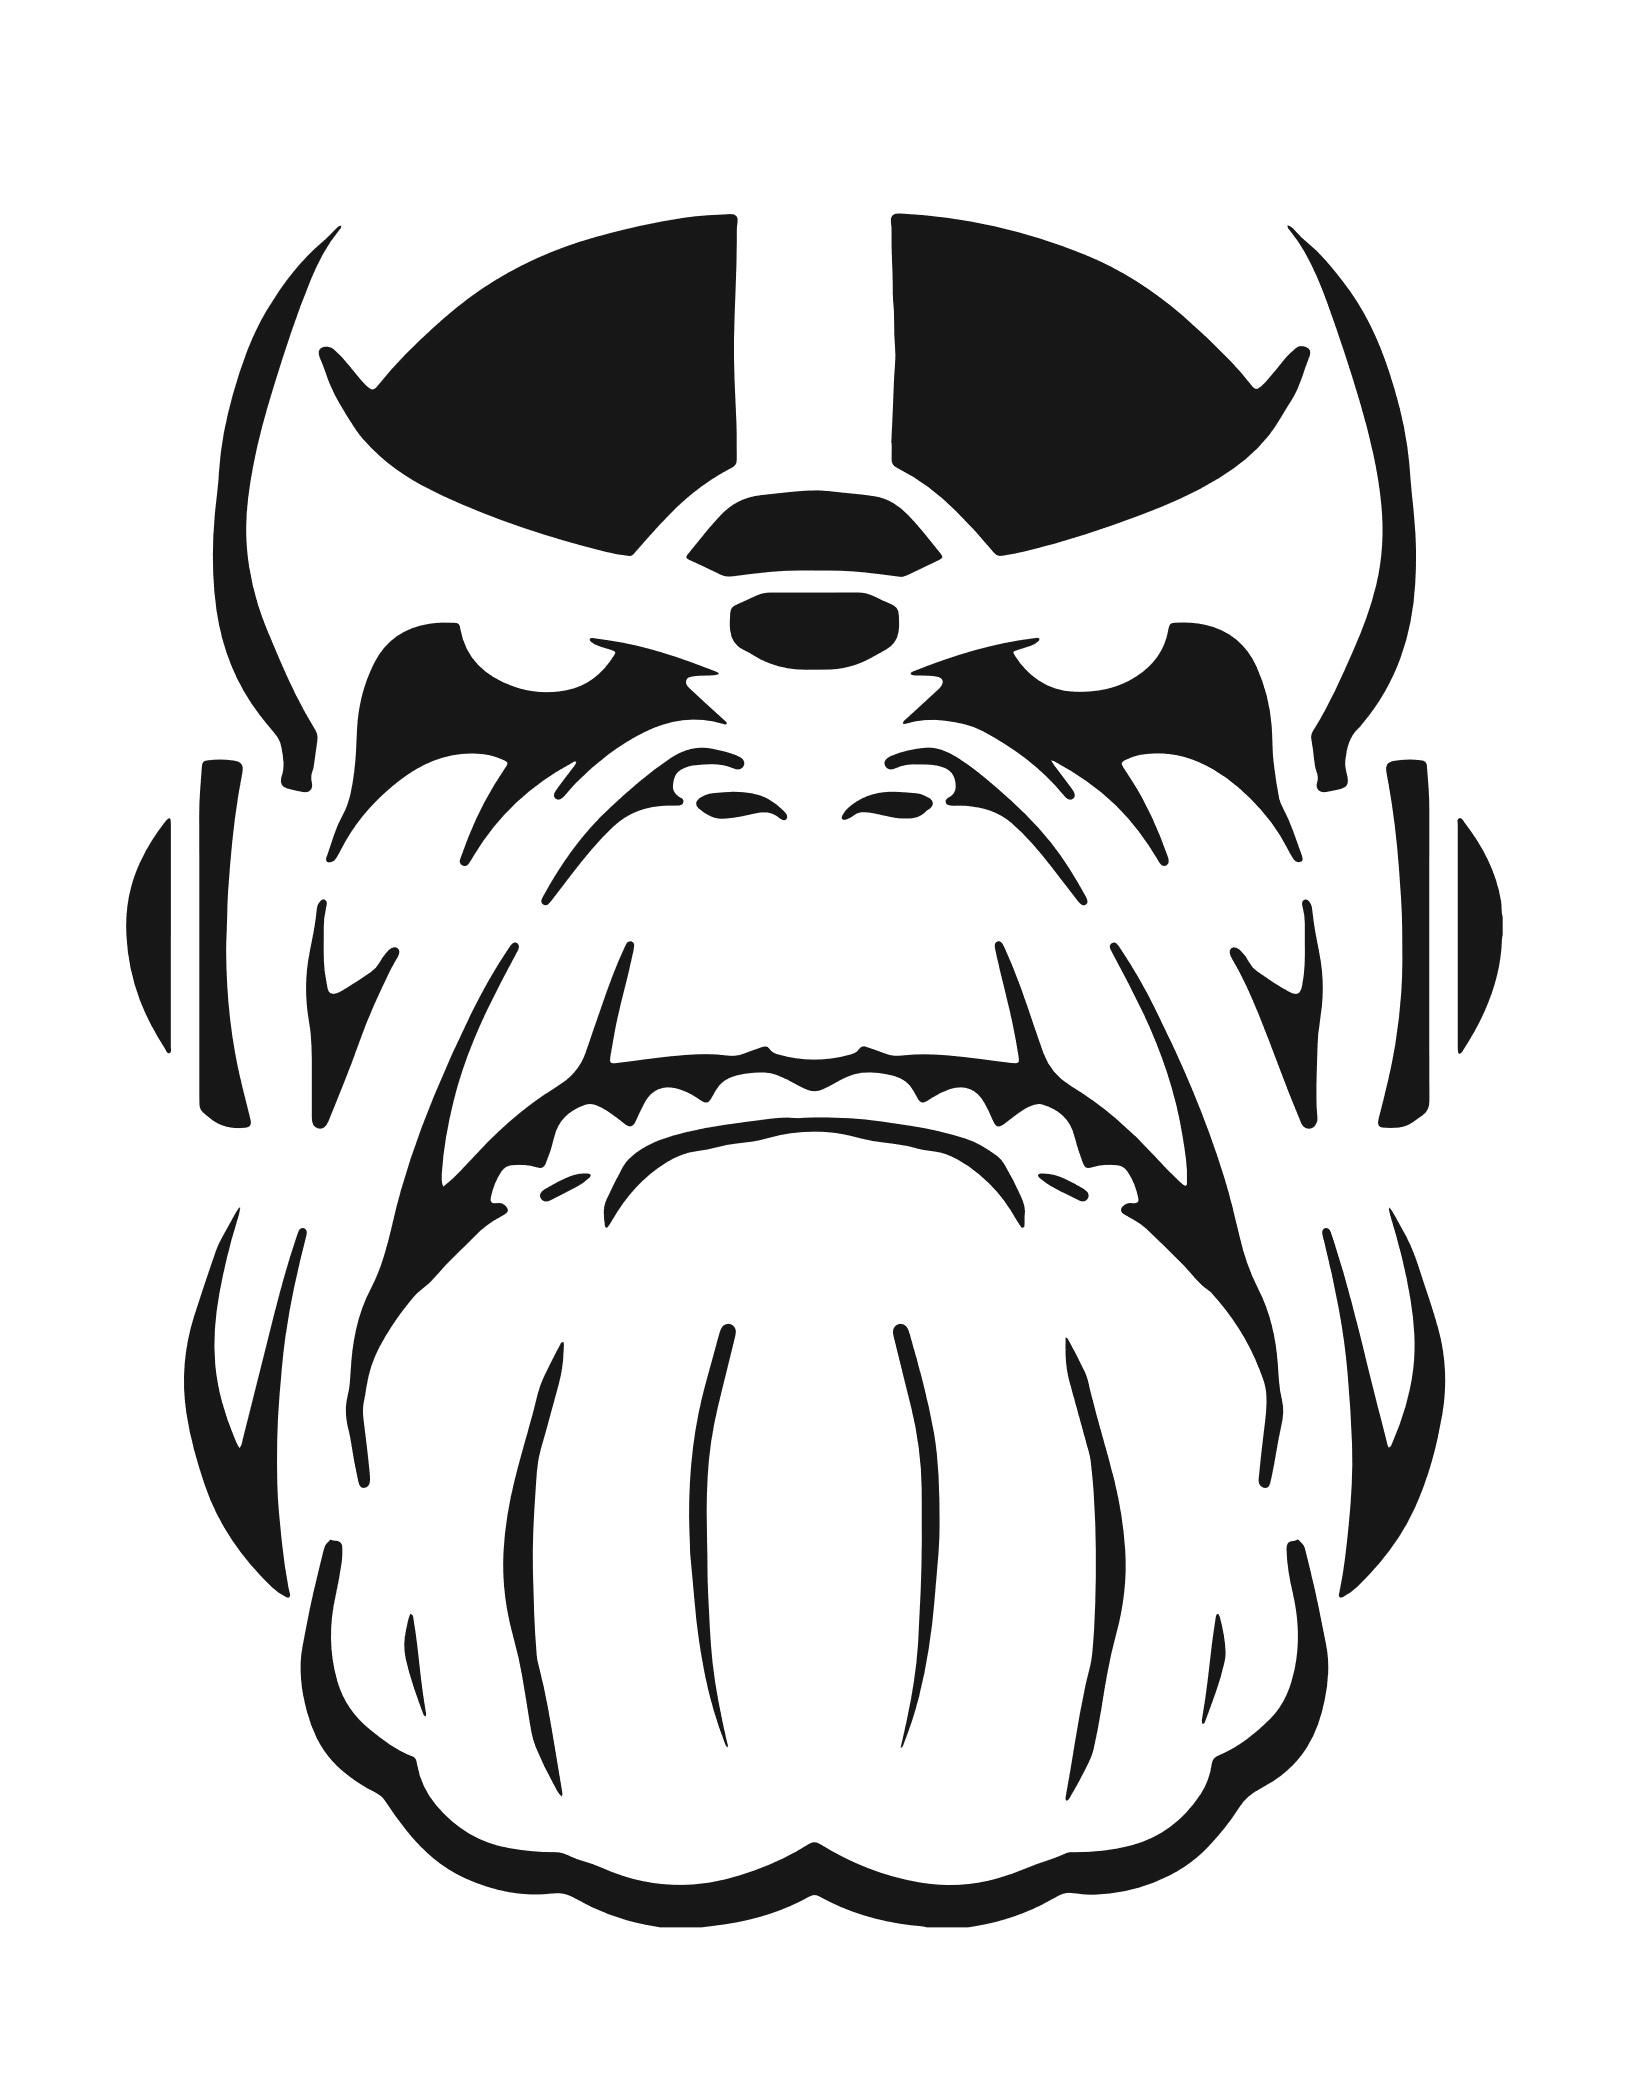 Thanos clipart black and white image free stock Strike Fear Into Everyone This Halloween -- Carve a Pumpkin ... image free stock